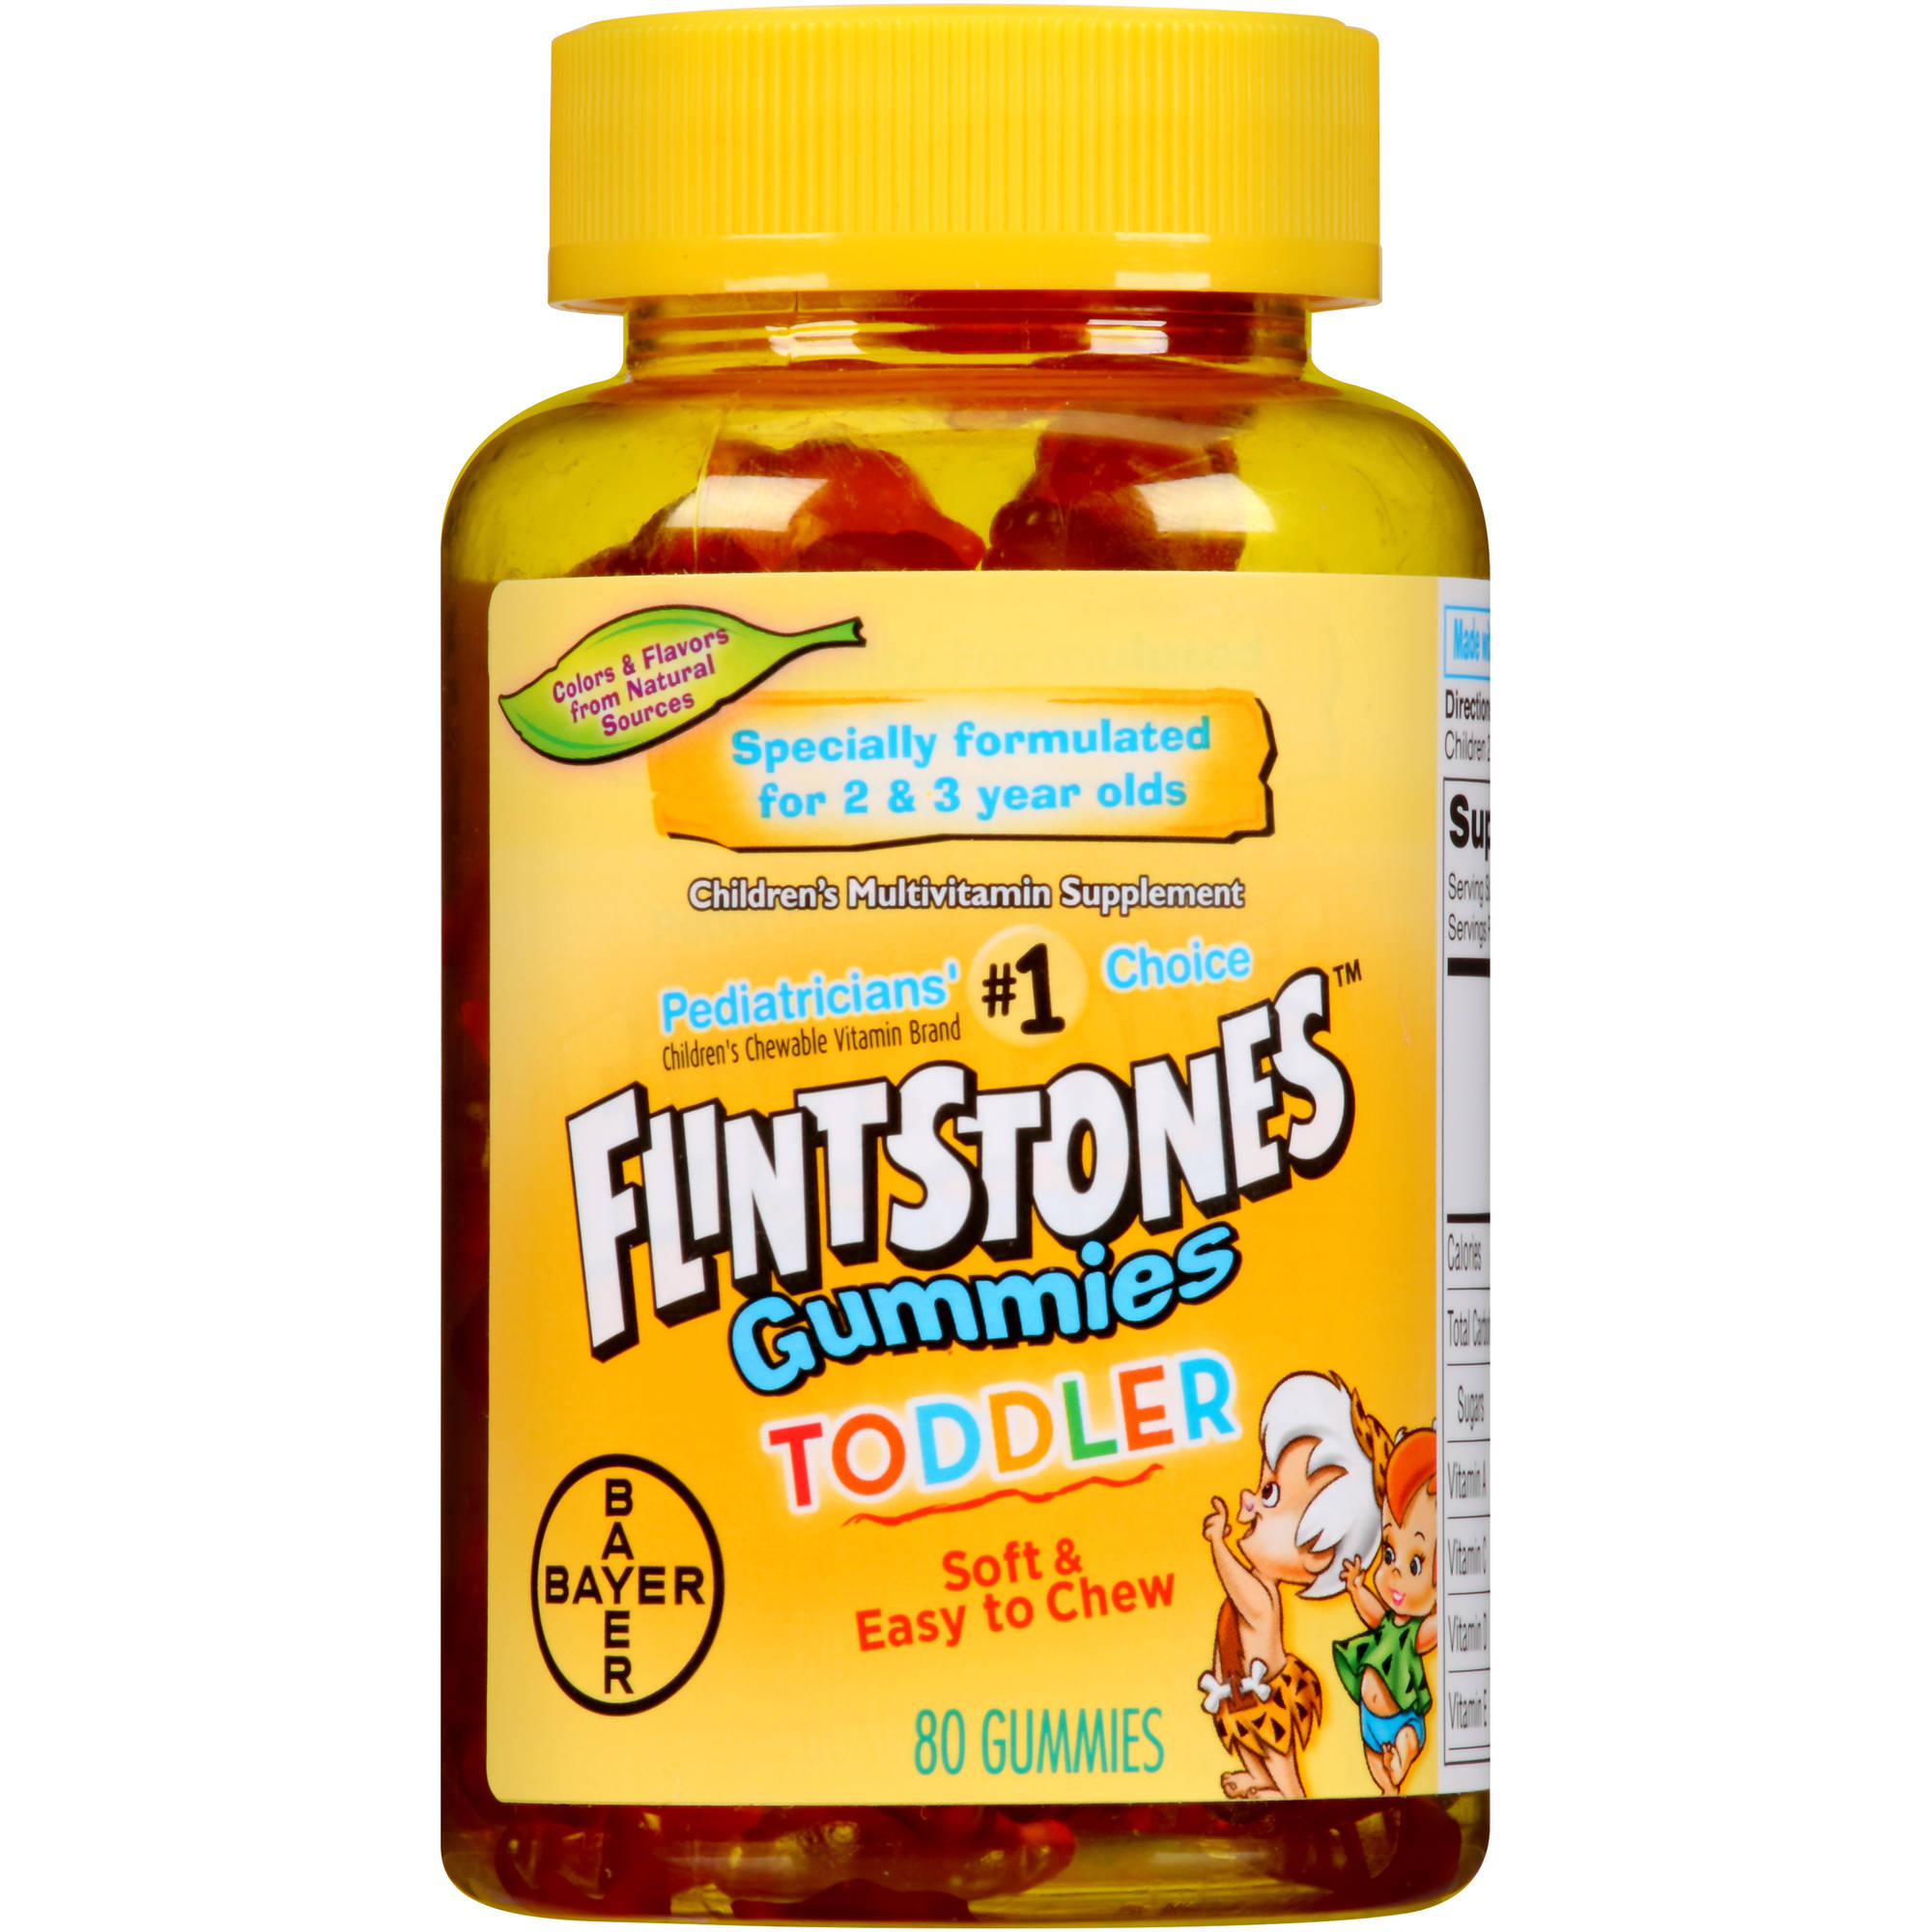 Flintstones Toddler Gummies Children's Multivitamin Supplement, 80 count